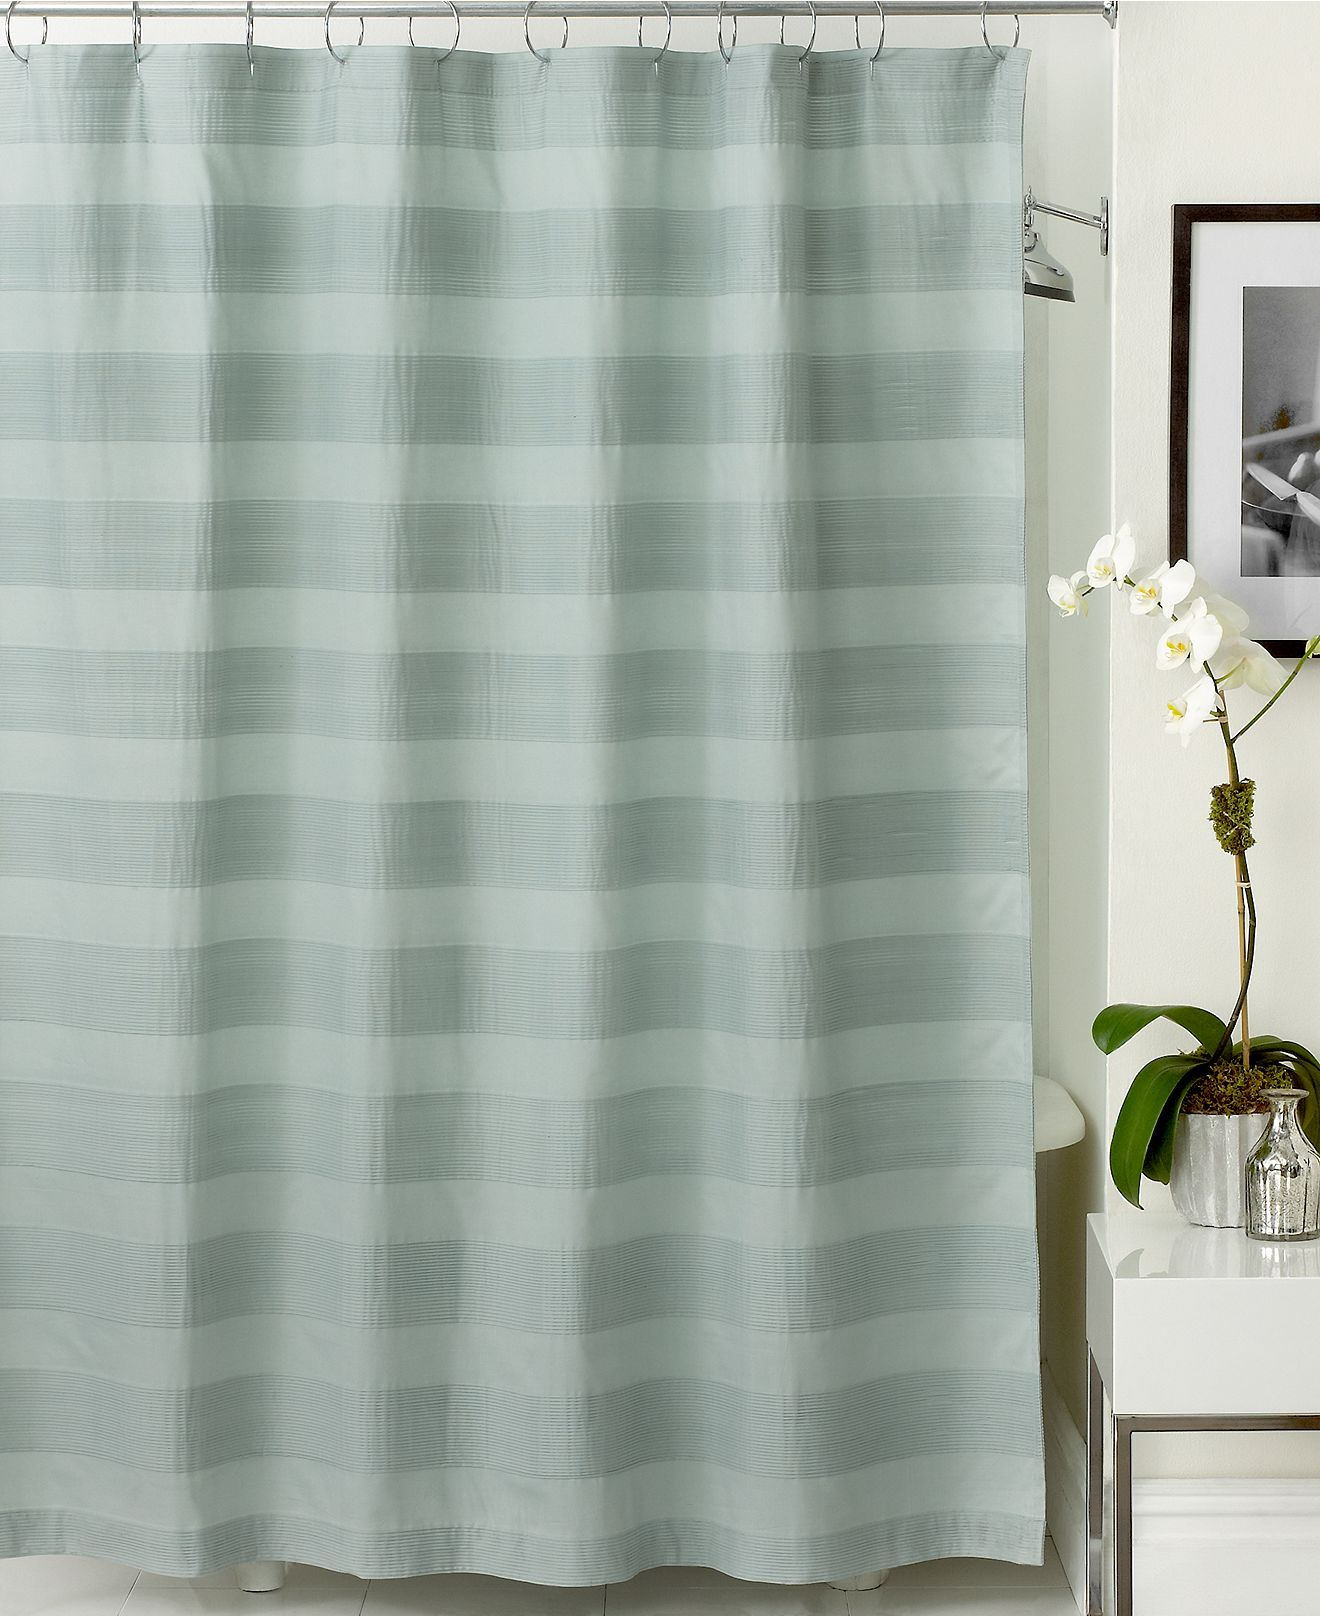 Hotel Collection Bath Accessories Woven Pleat Shower Curtain